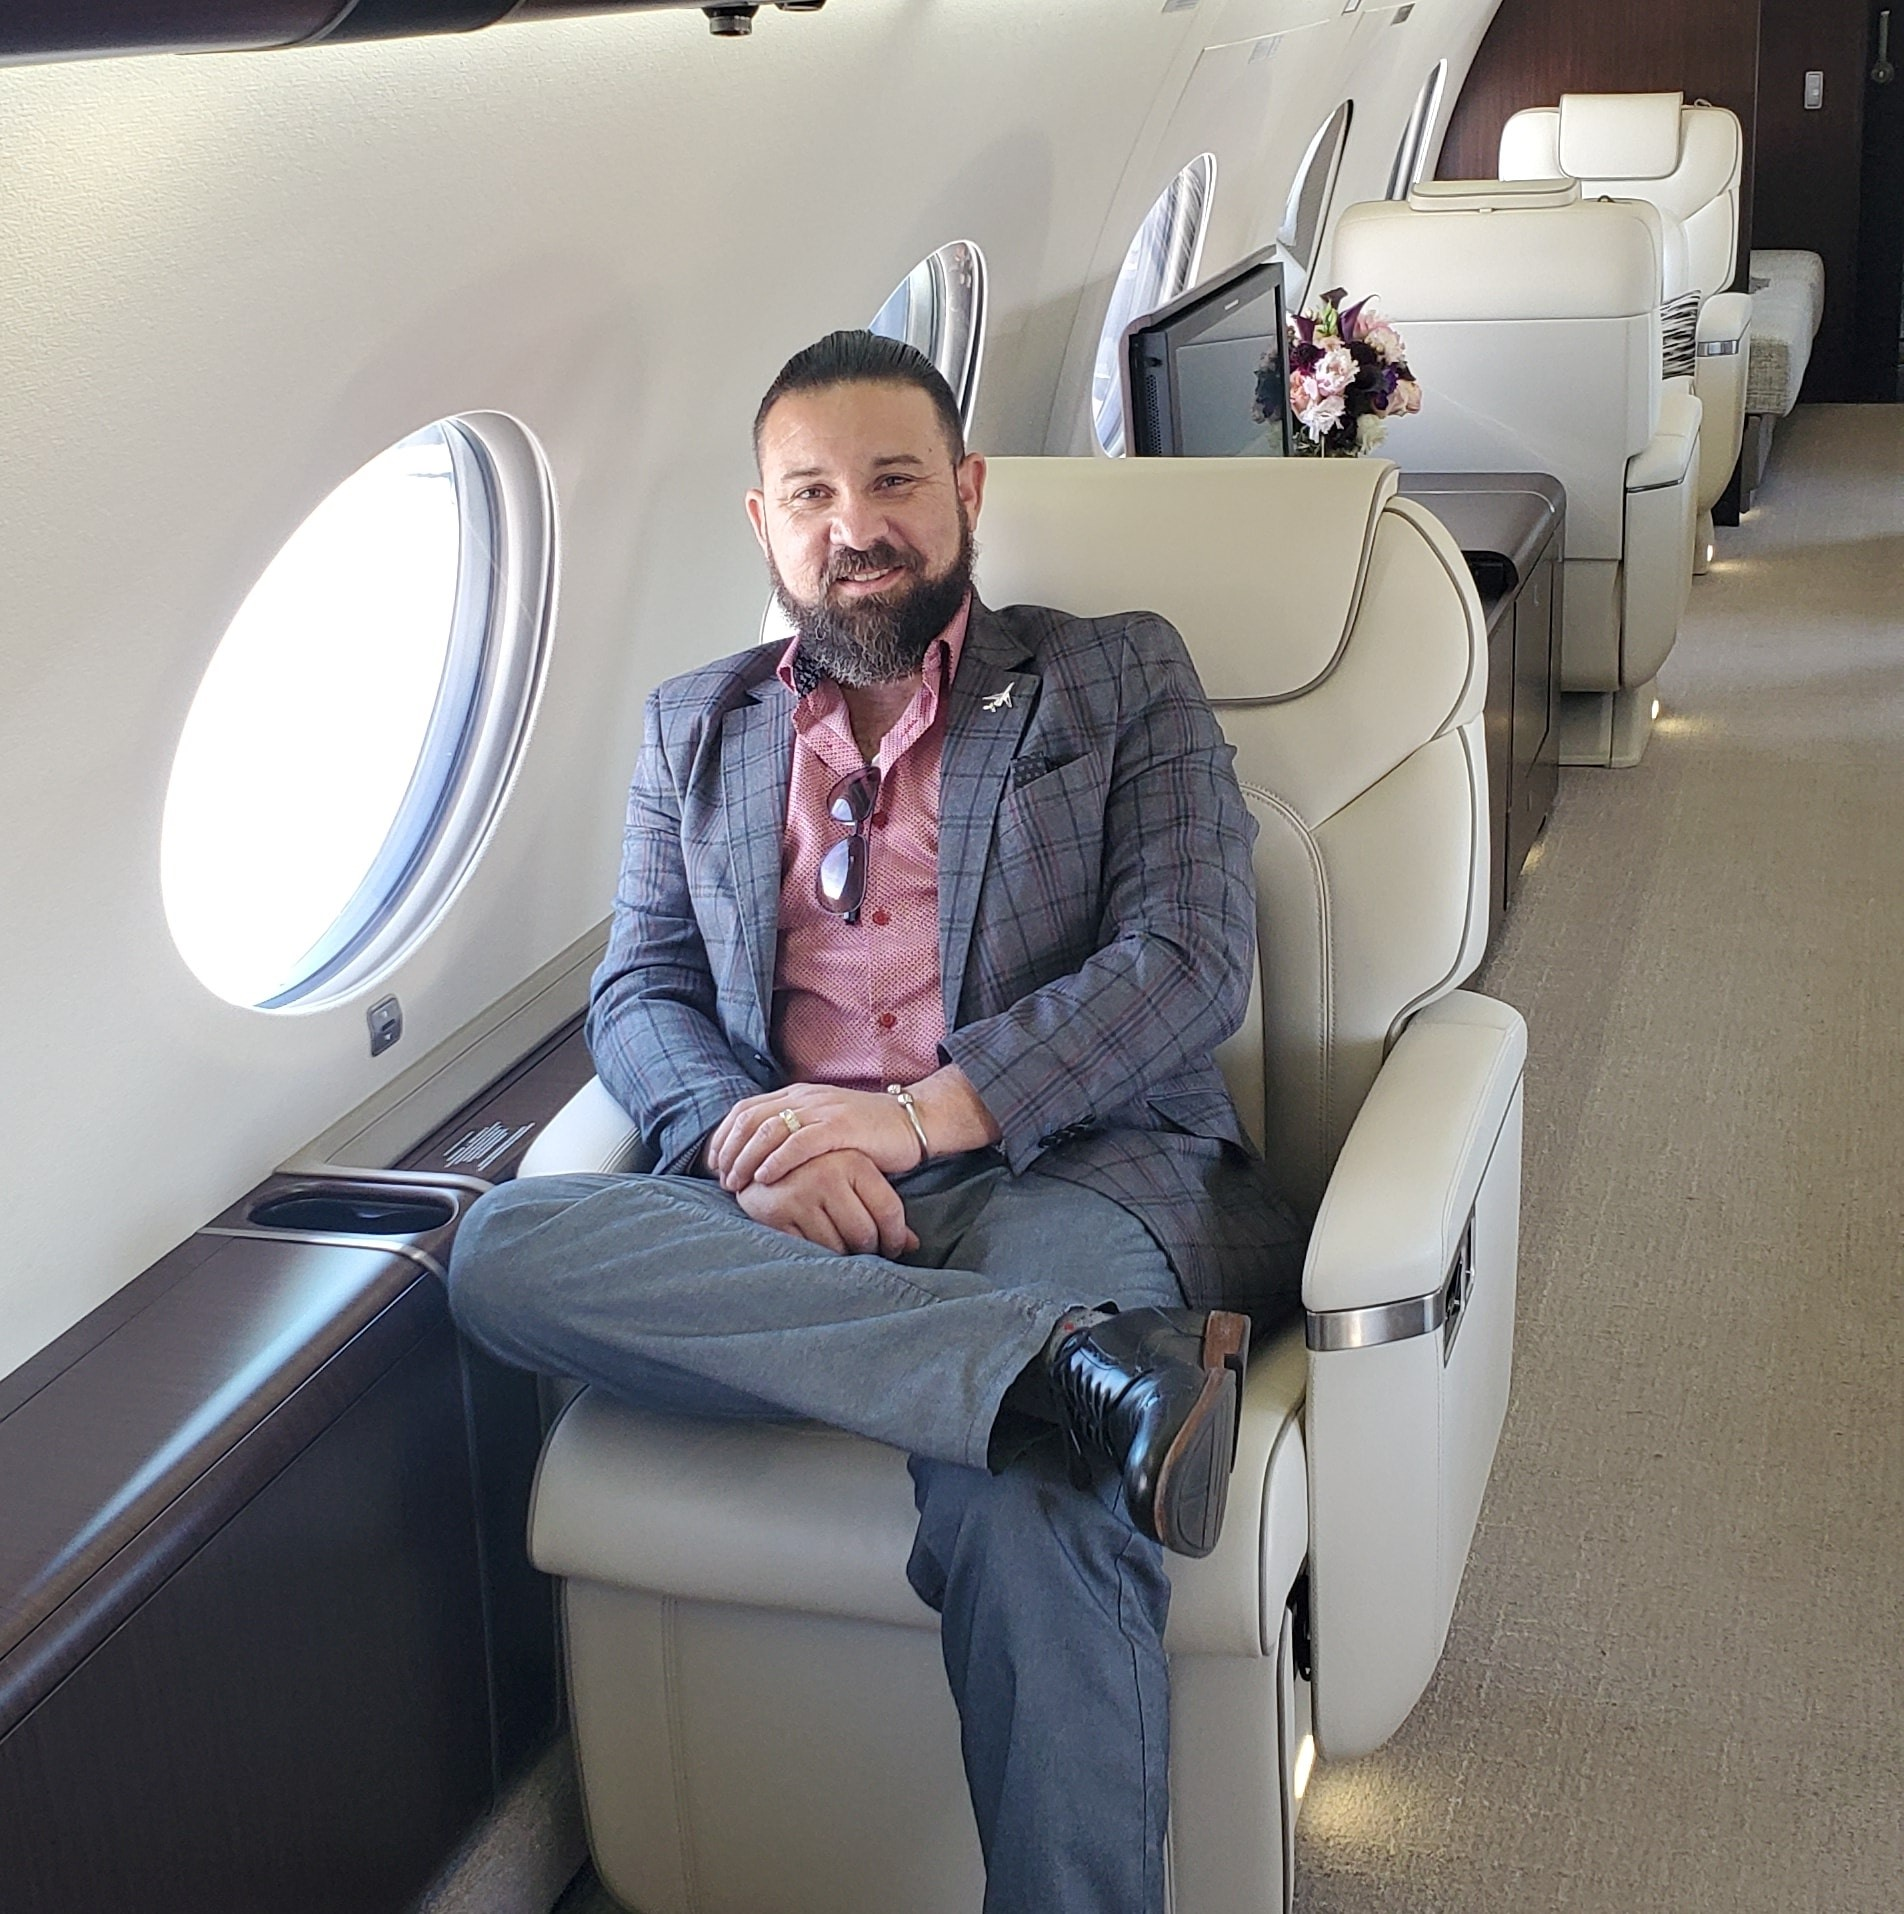 Pedro Curbelo Closed Another Private Jet Deal In Ft. Lauderdale, FL Despite The COVID-19 Pandemic